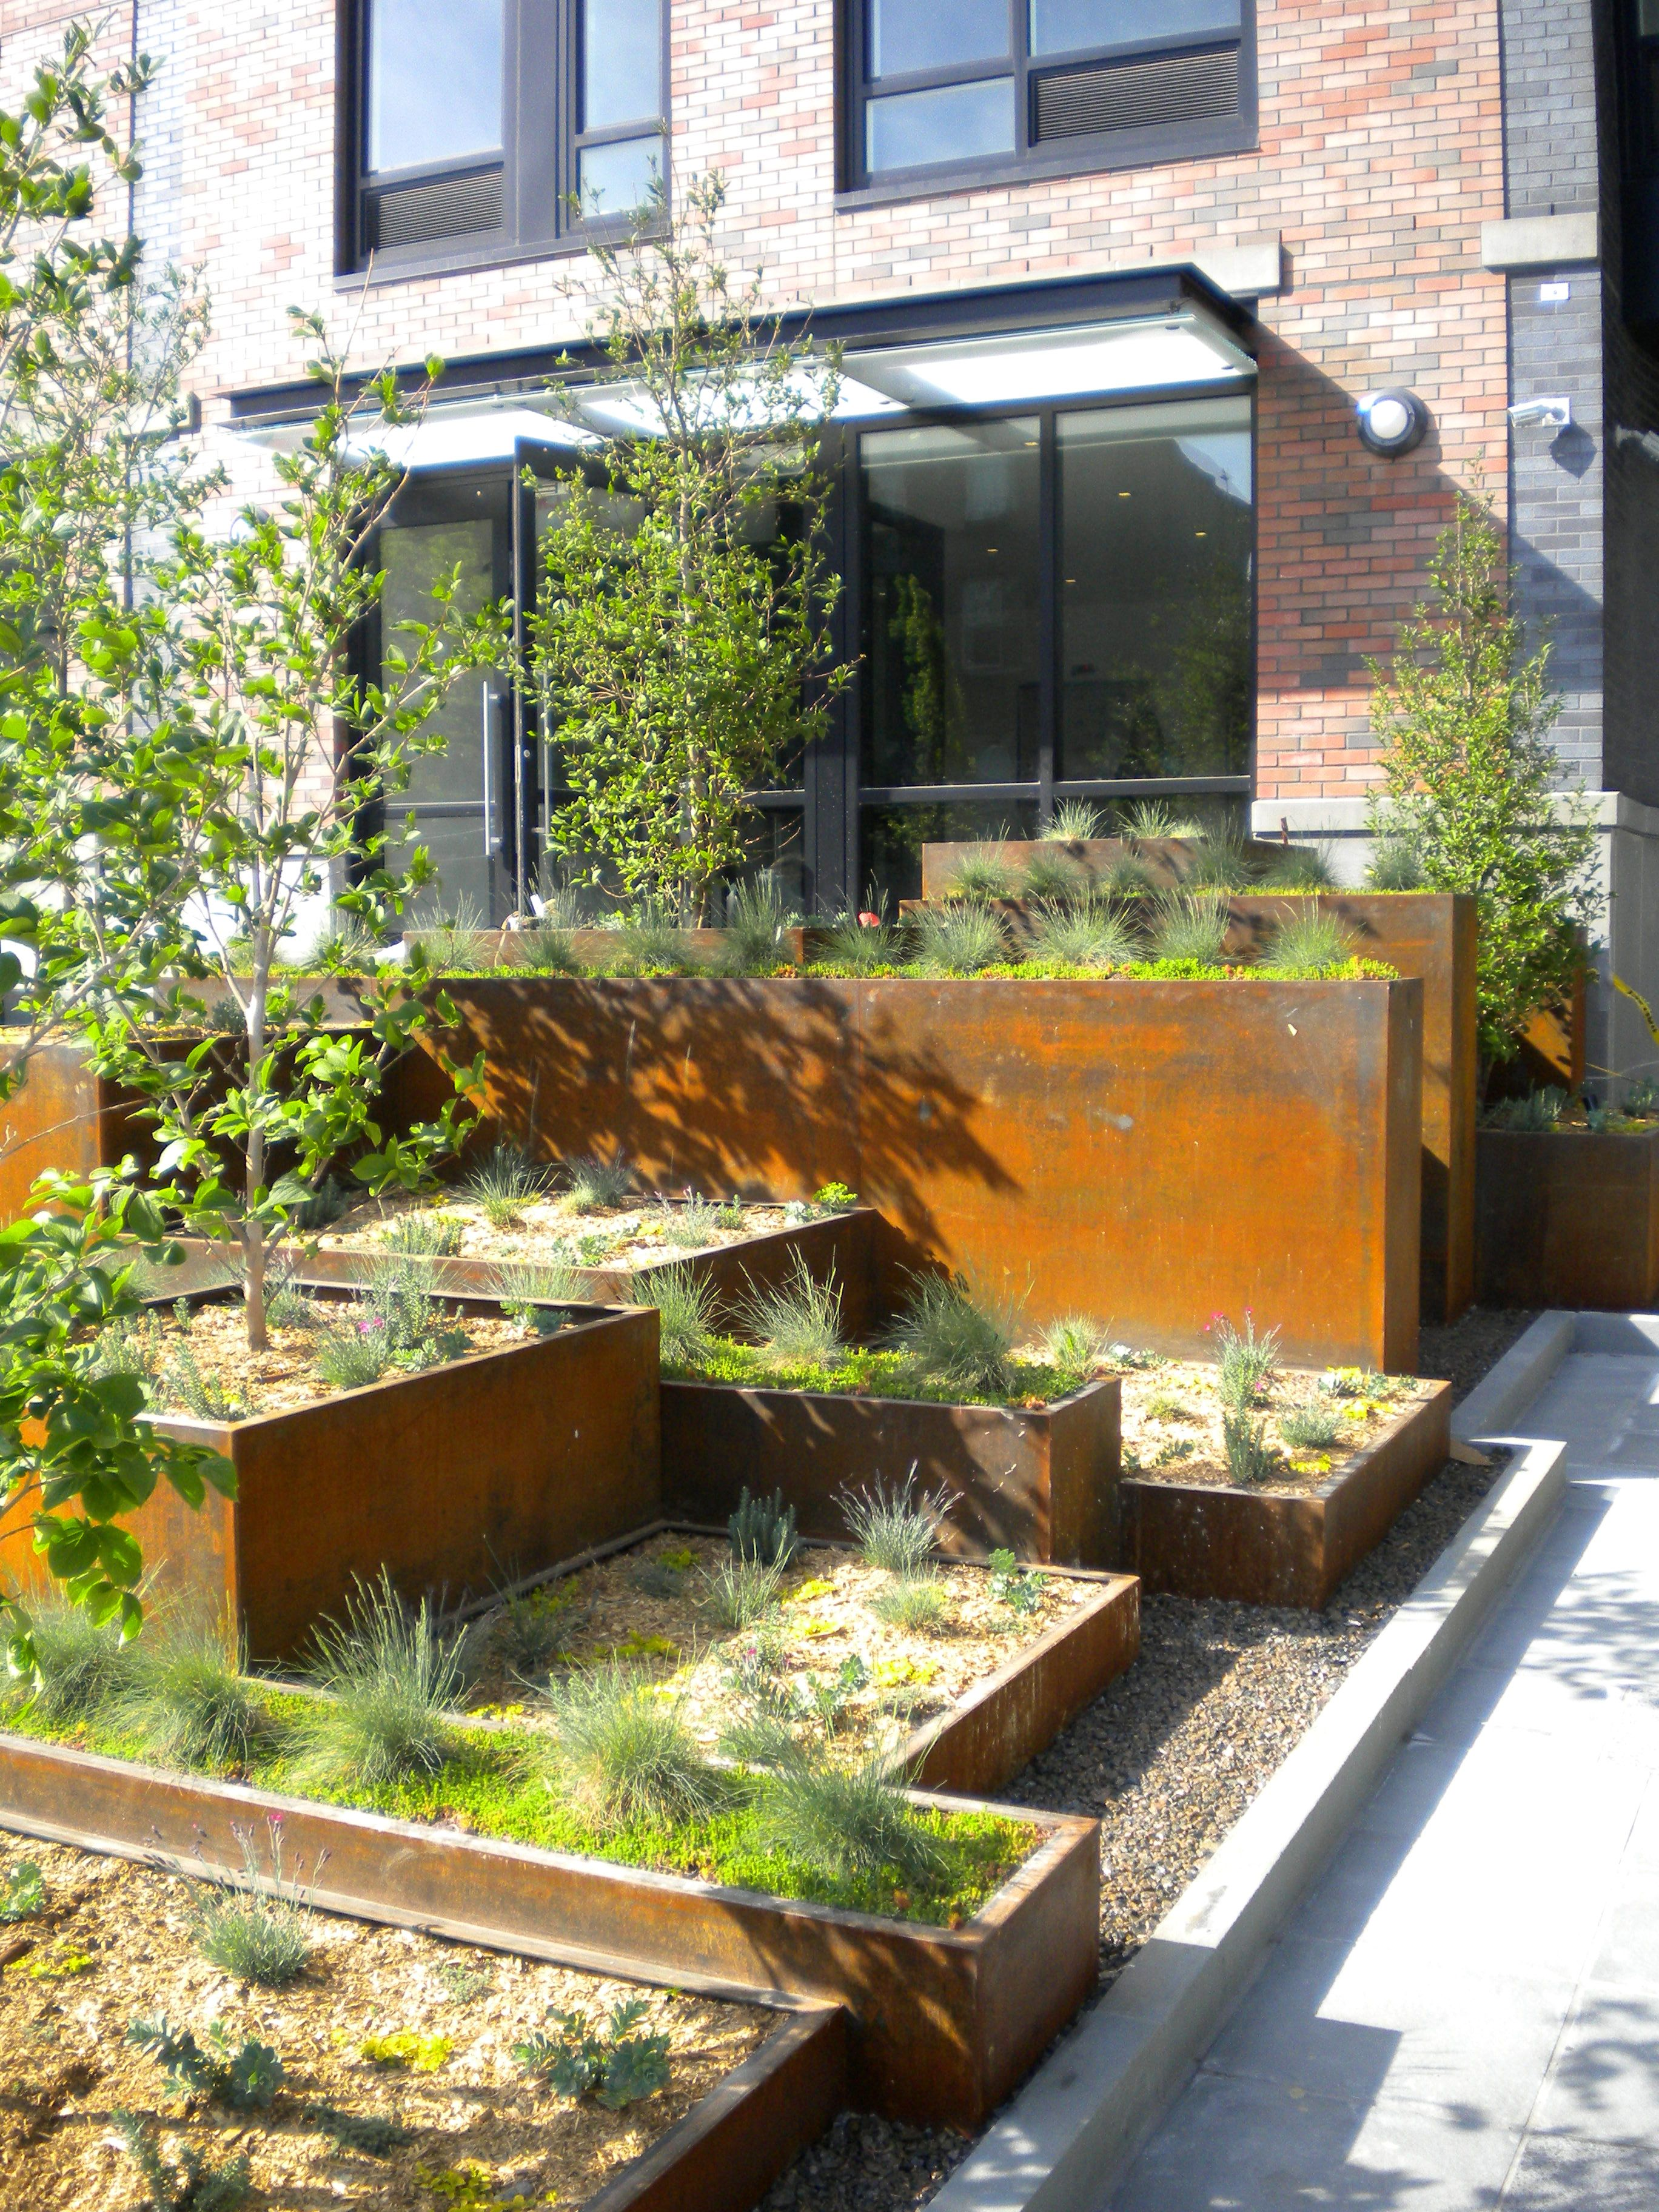 1000+ images about RETAINING WALLS RAISED BEDS on